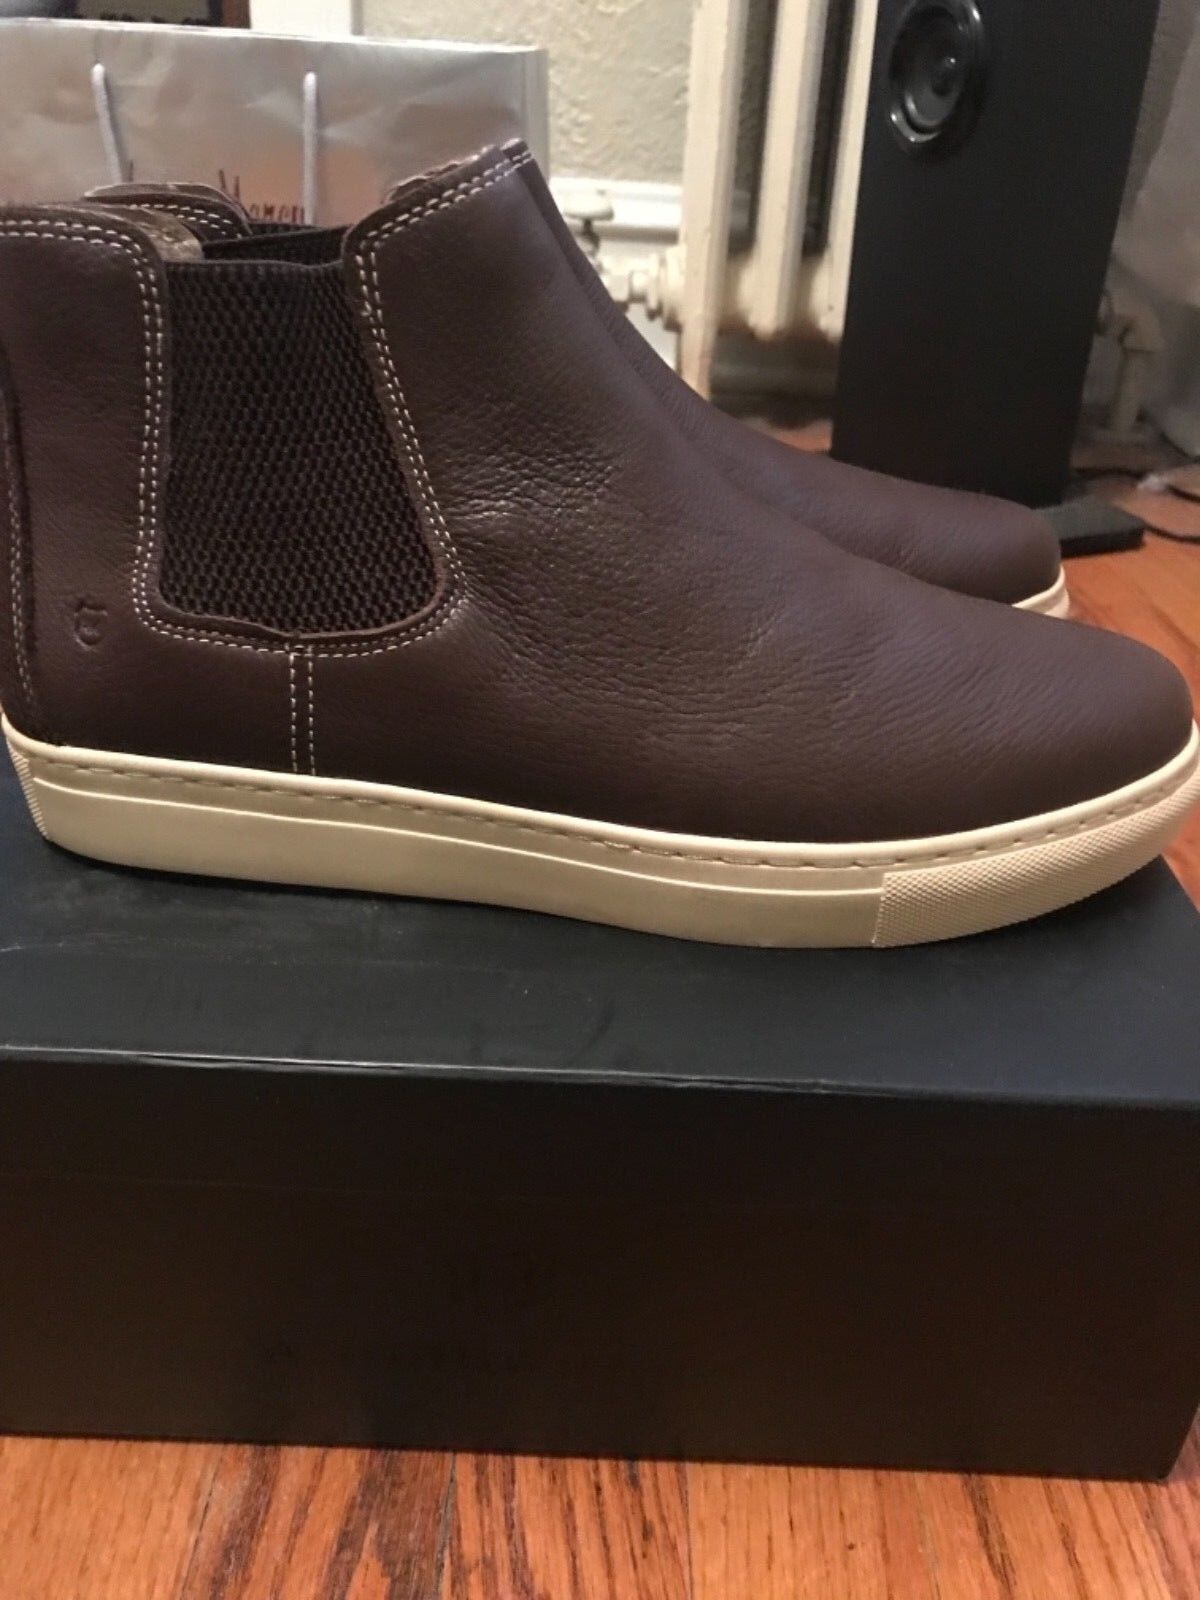 *ONE OF A KIND*  Pelle Slip on  Boot Brown Andrew Marc Uomo sz 12M NIB